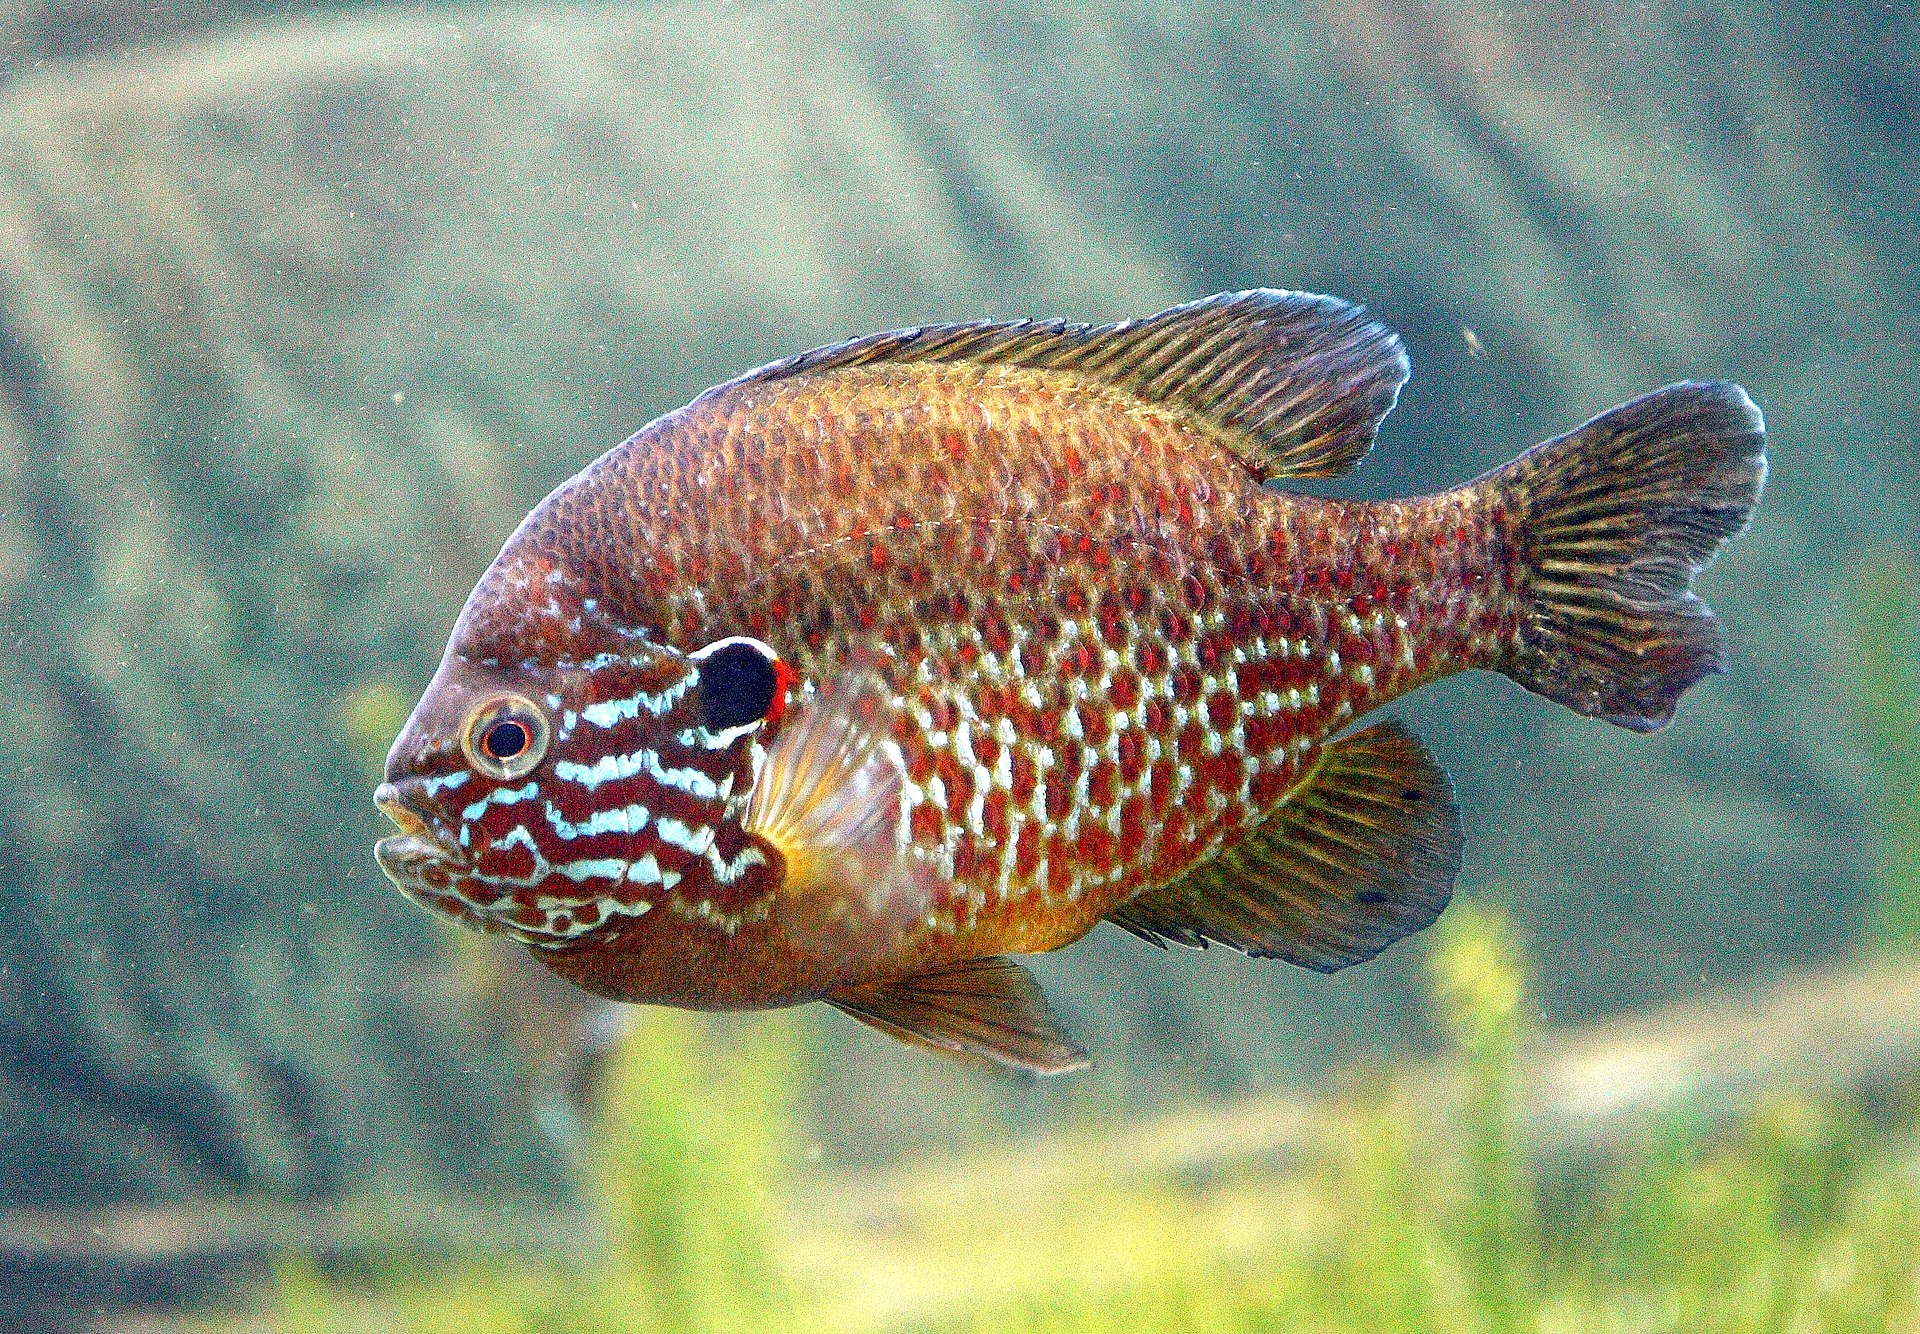 A pumpkinseed sunfish.